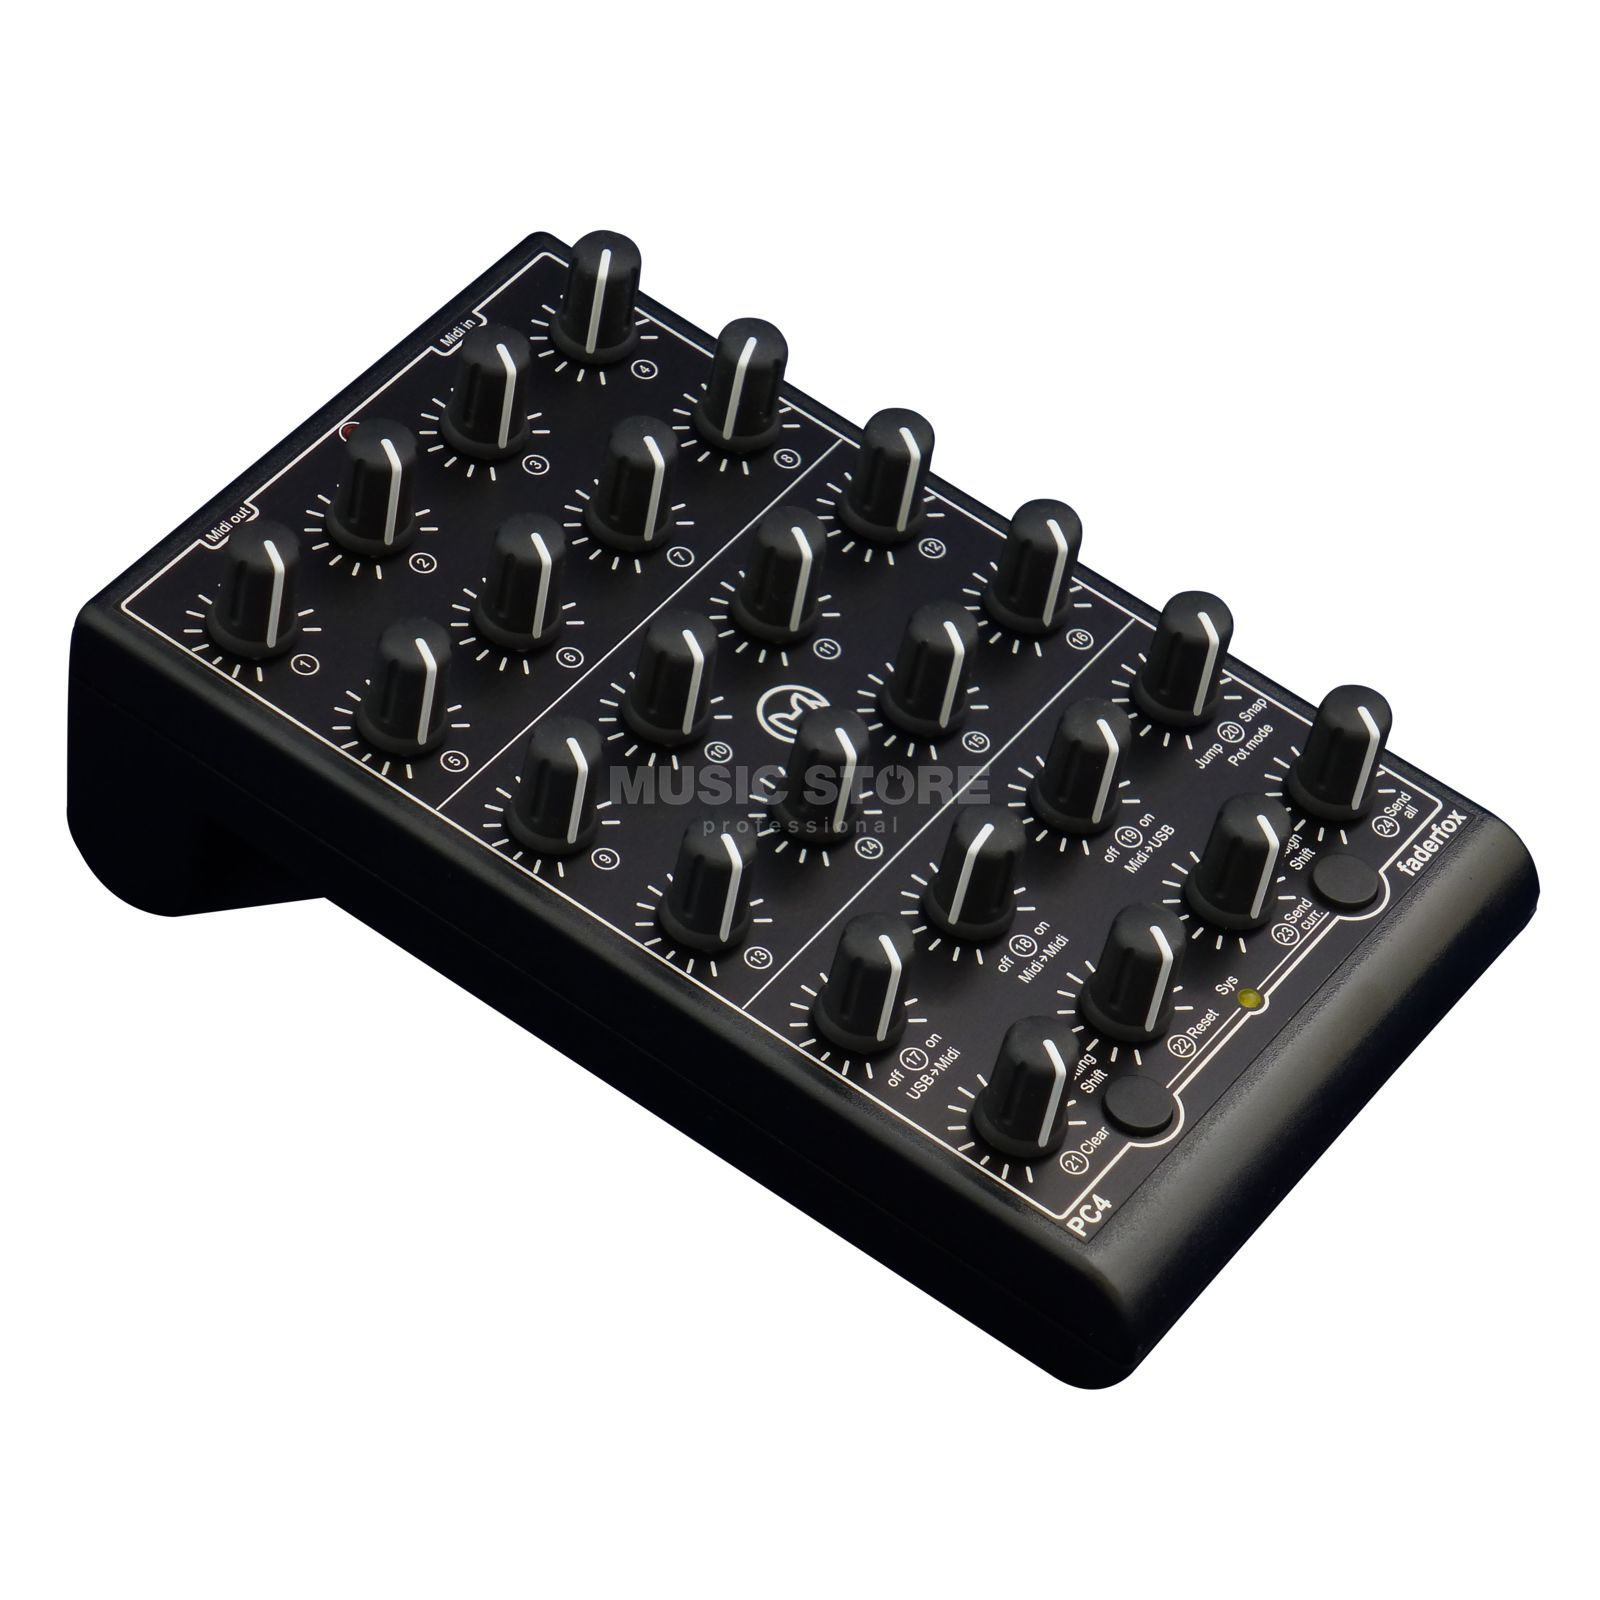 Faderfox PC5 Product Image